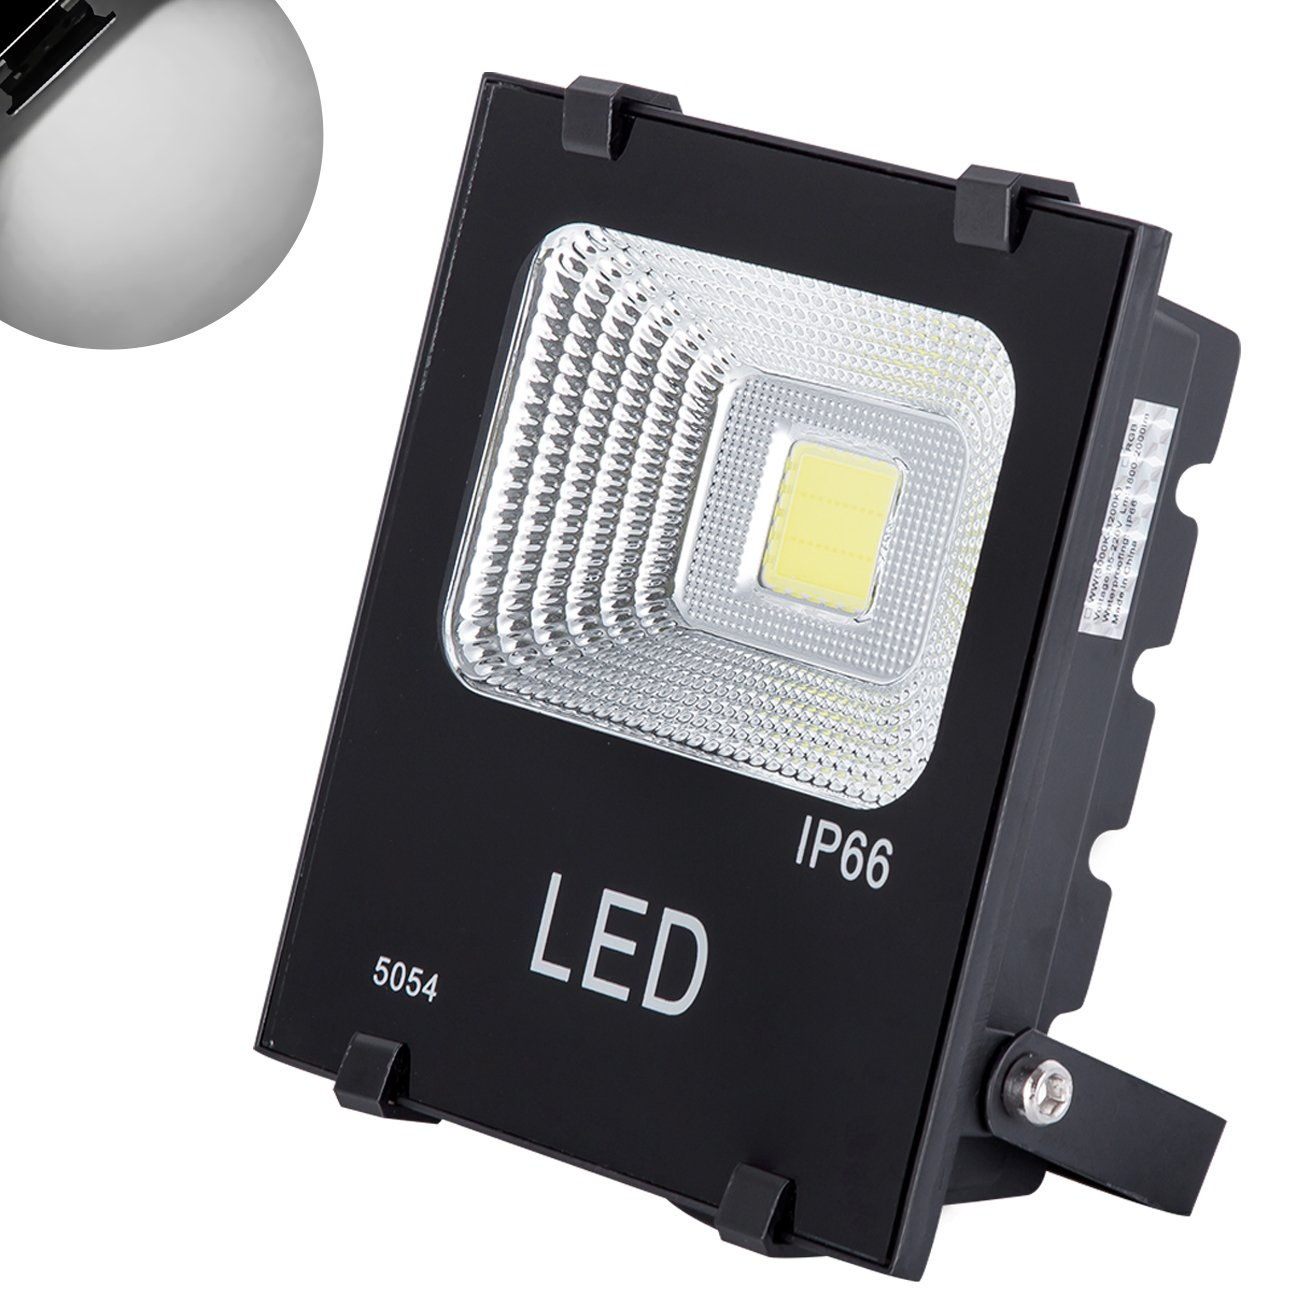 GM Lighting Outdoor LED Flood Lights 20W LED Security Lights Halogen Bulb Equivalent with IP66 Waterproof for Garage, Garden, and Yard, Daylight White, 2000Lm